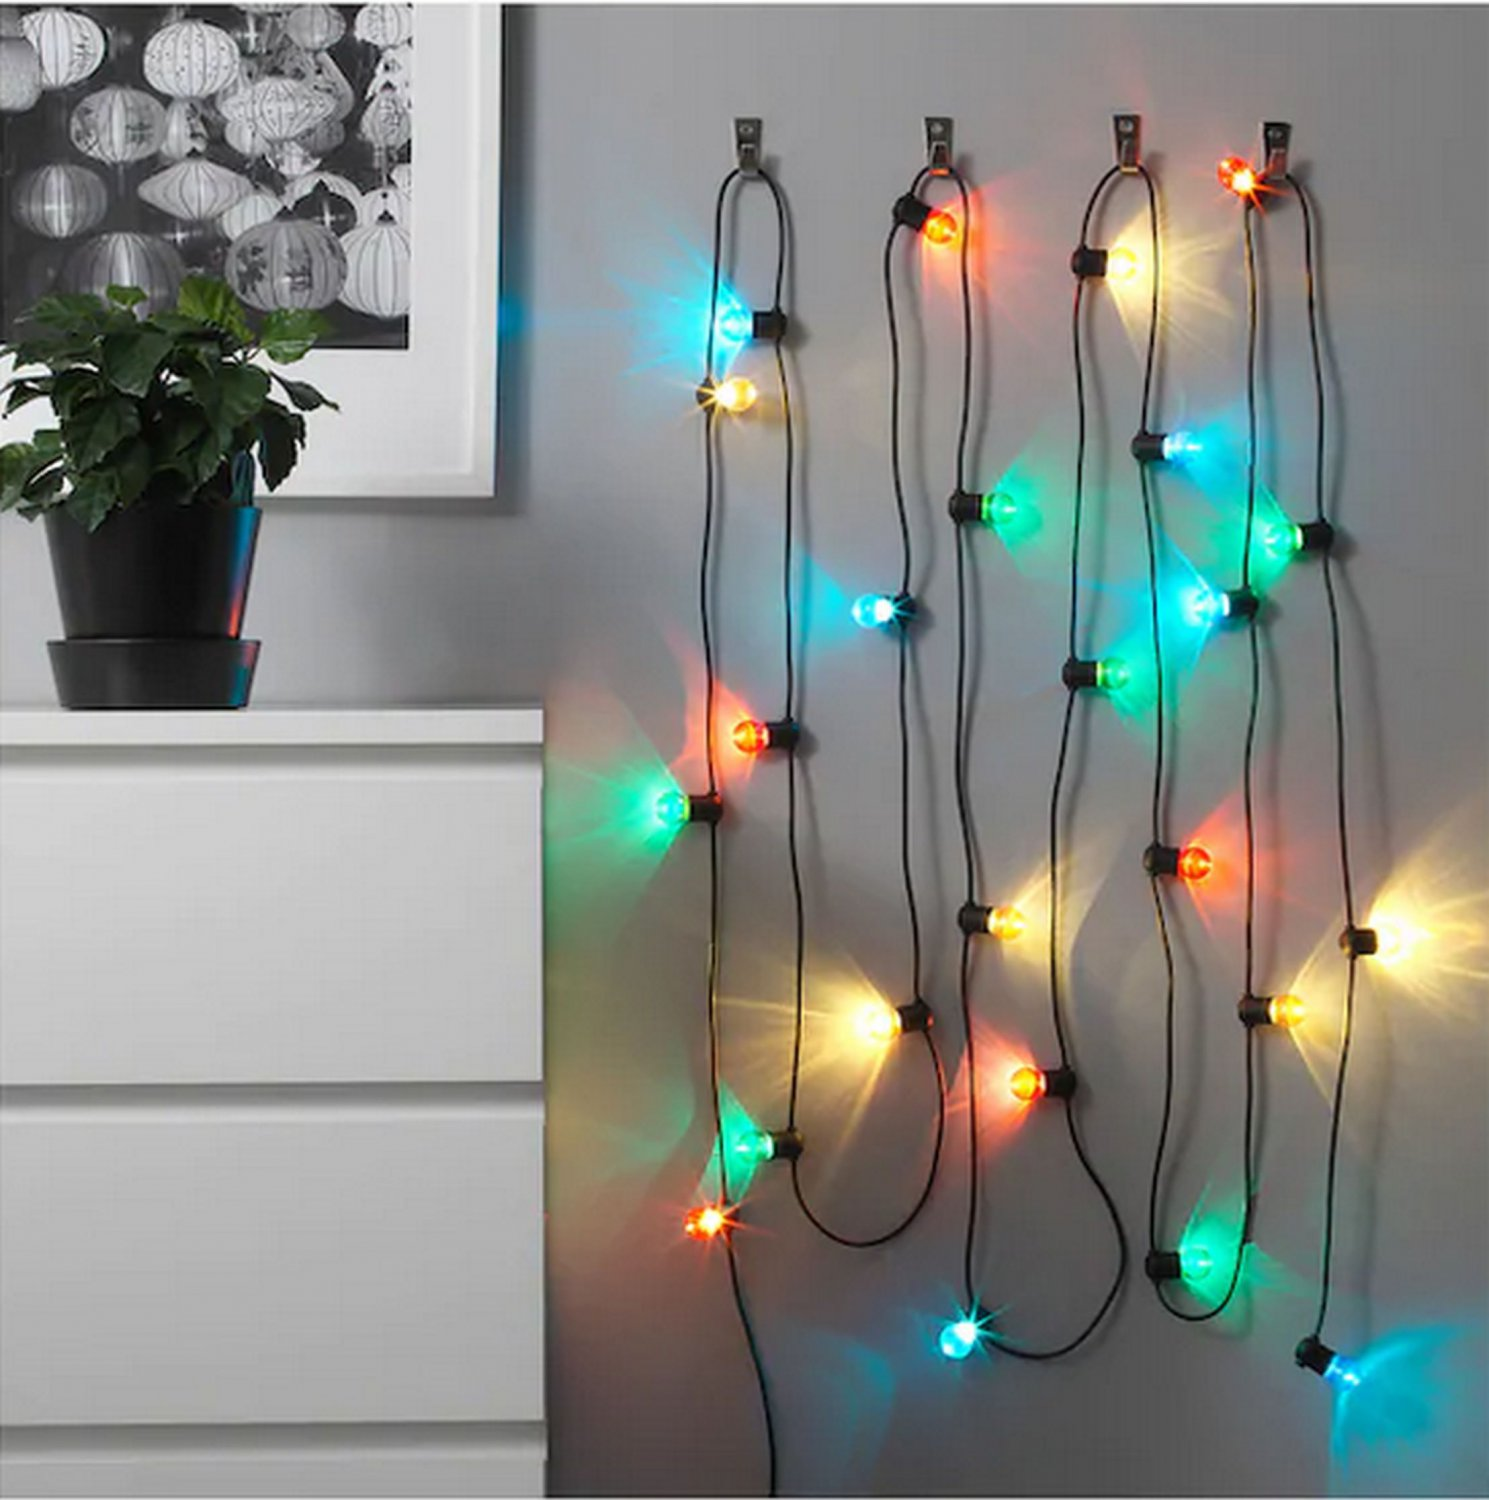 IKEA Solvinden 24 LIGHT CHAIN LED  INDOOR OUTDOOR Multicolor Holiday Fairy Lights Strala Glansa Xmas